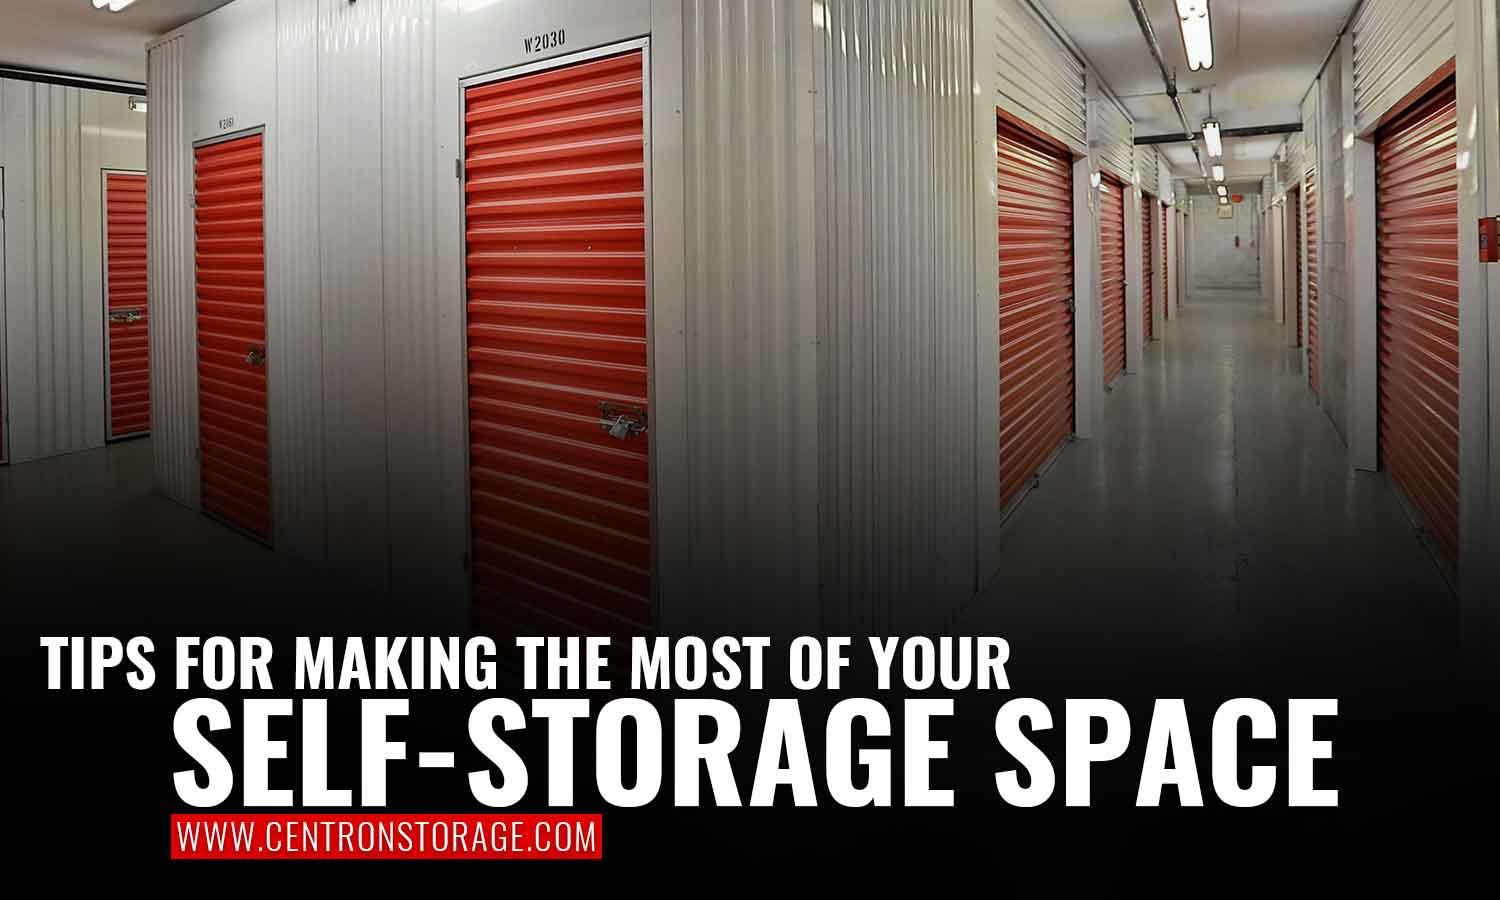 Tips For Making The Most of Your Self Storage Space